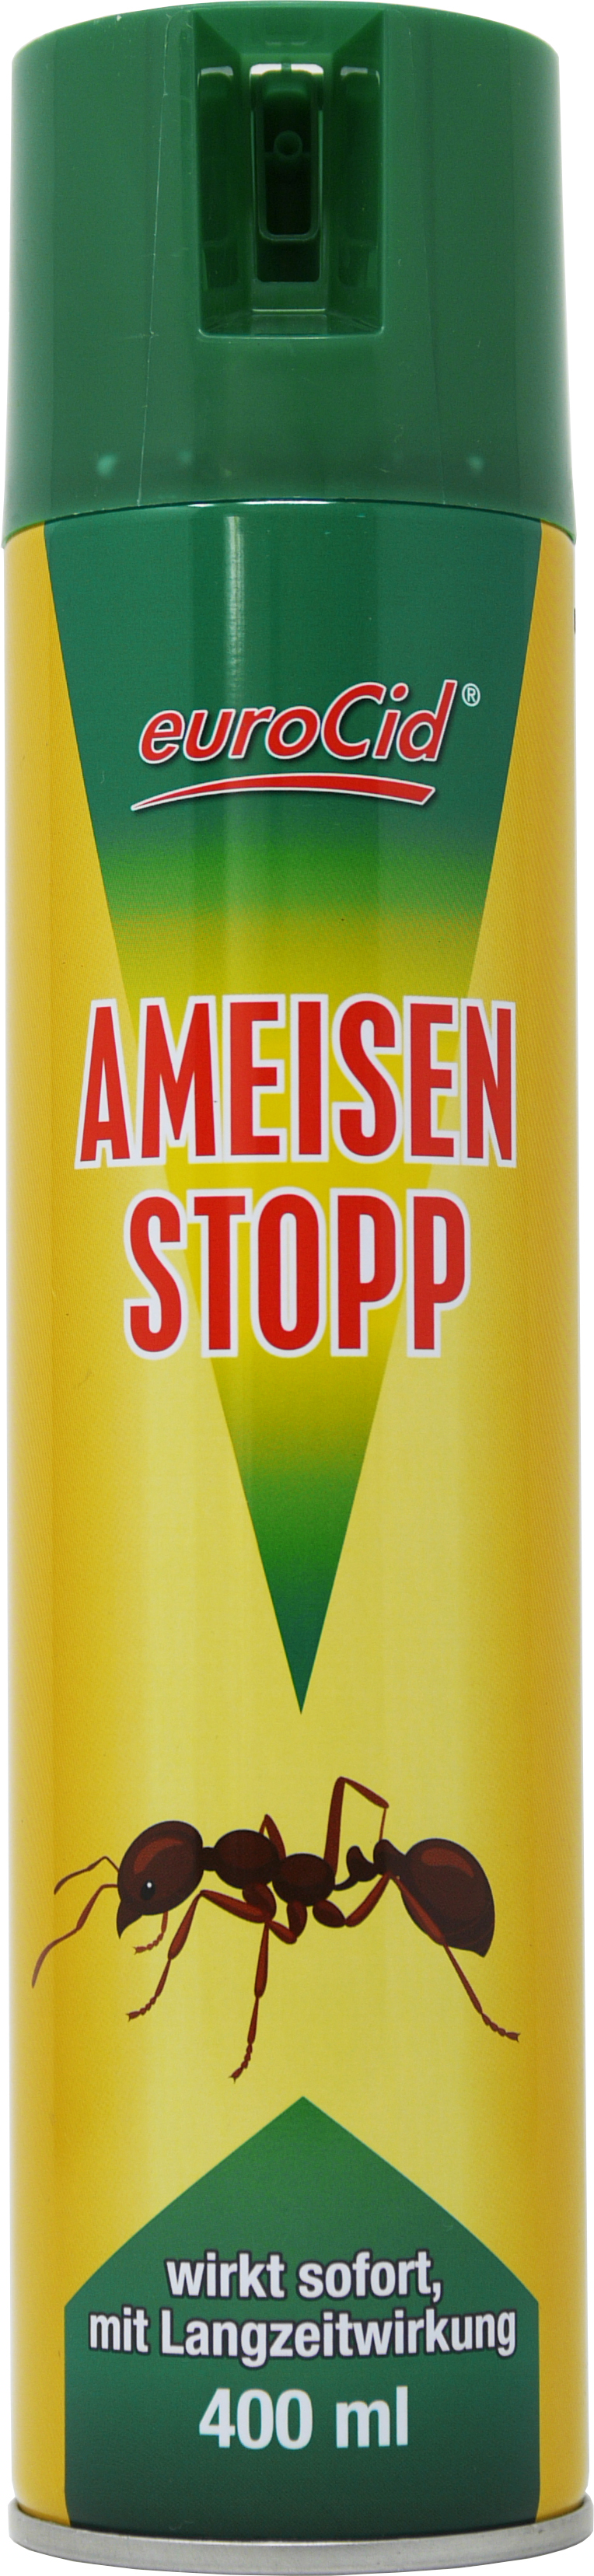 02191 - anti stop spray 300 ml